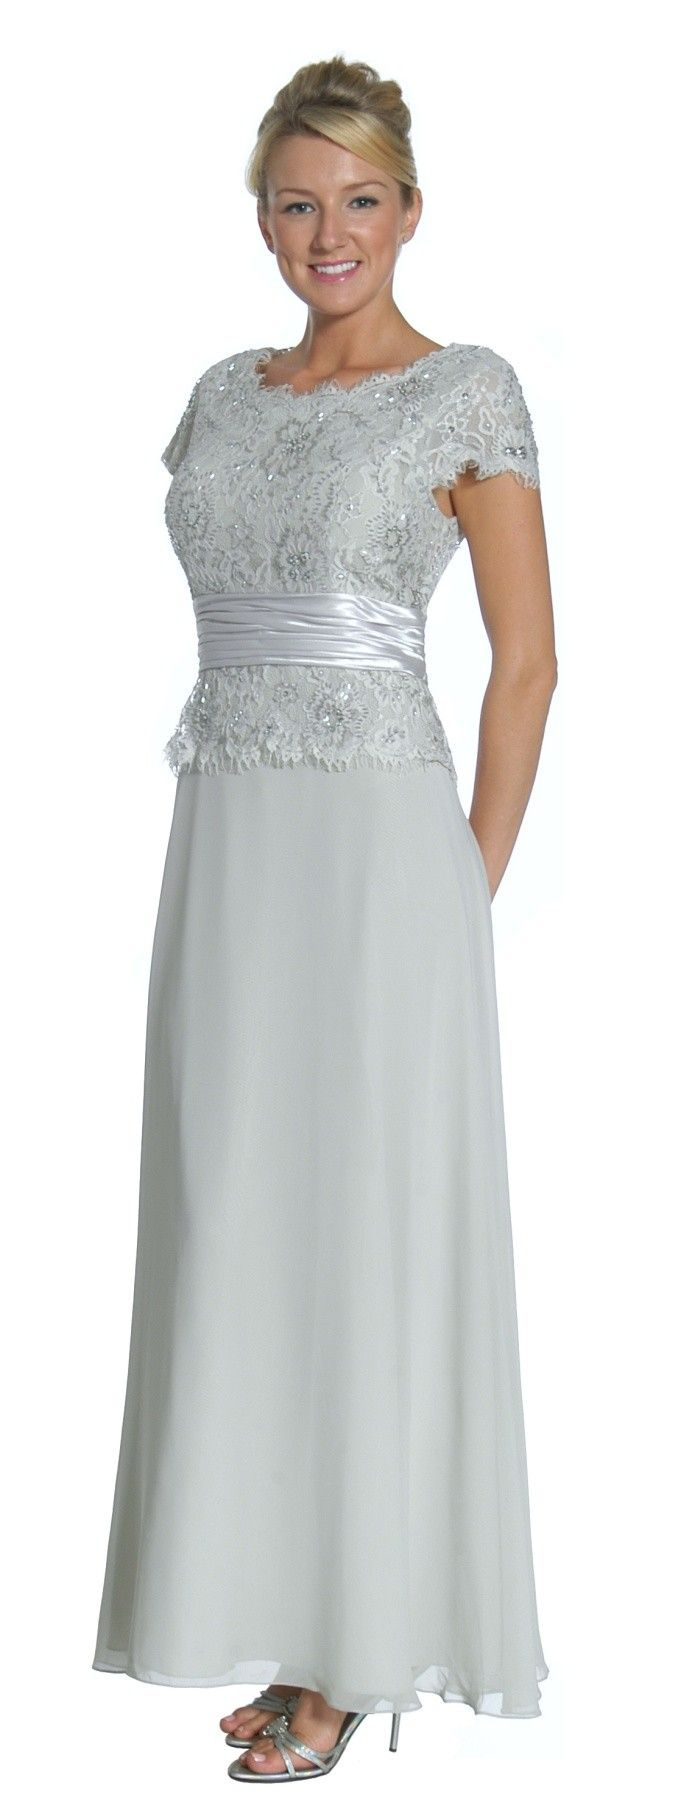 Silver Mother of the Bride/Groom Dress Evening Chiffon Cap Sleeve (5 Colors Available) $227.99 Short Sleeve Formal Dresses